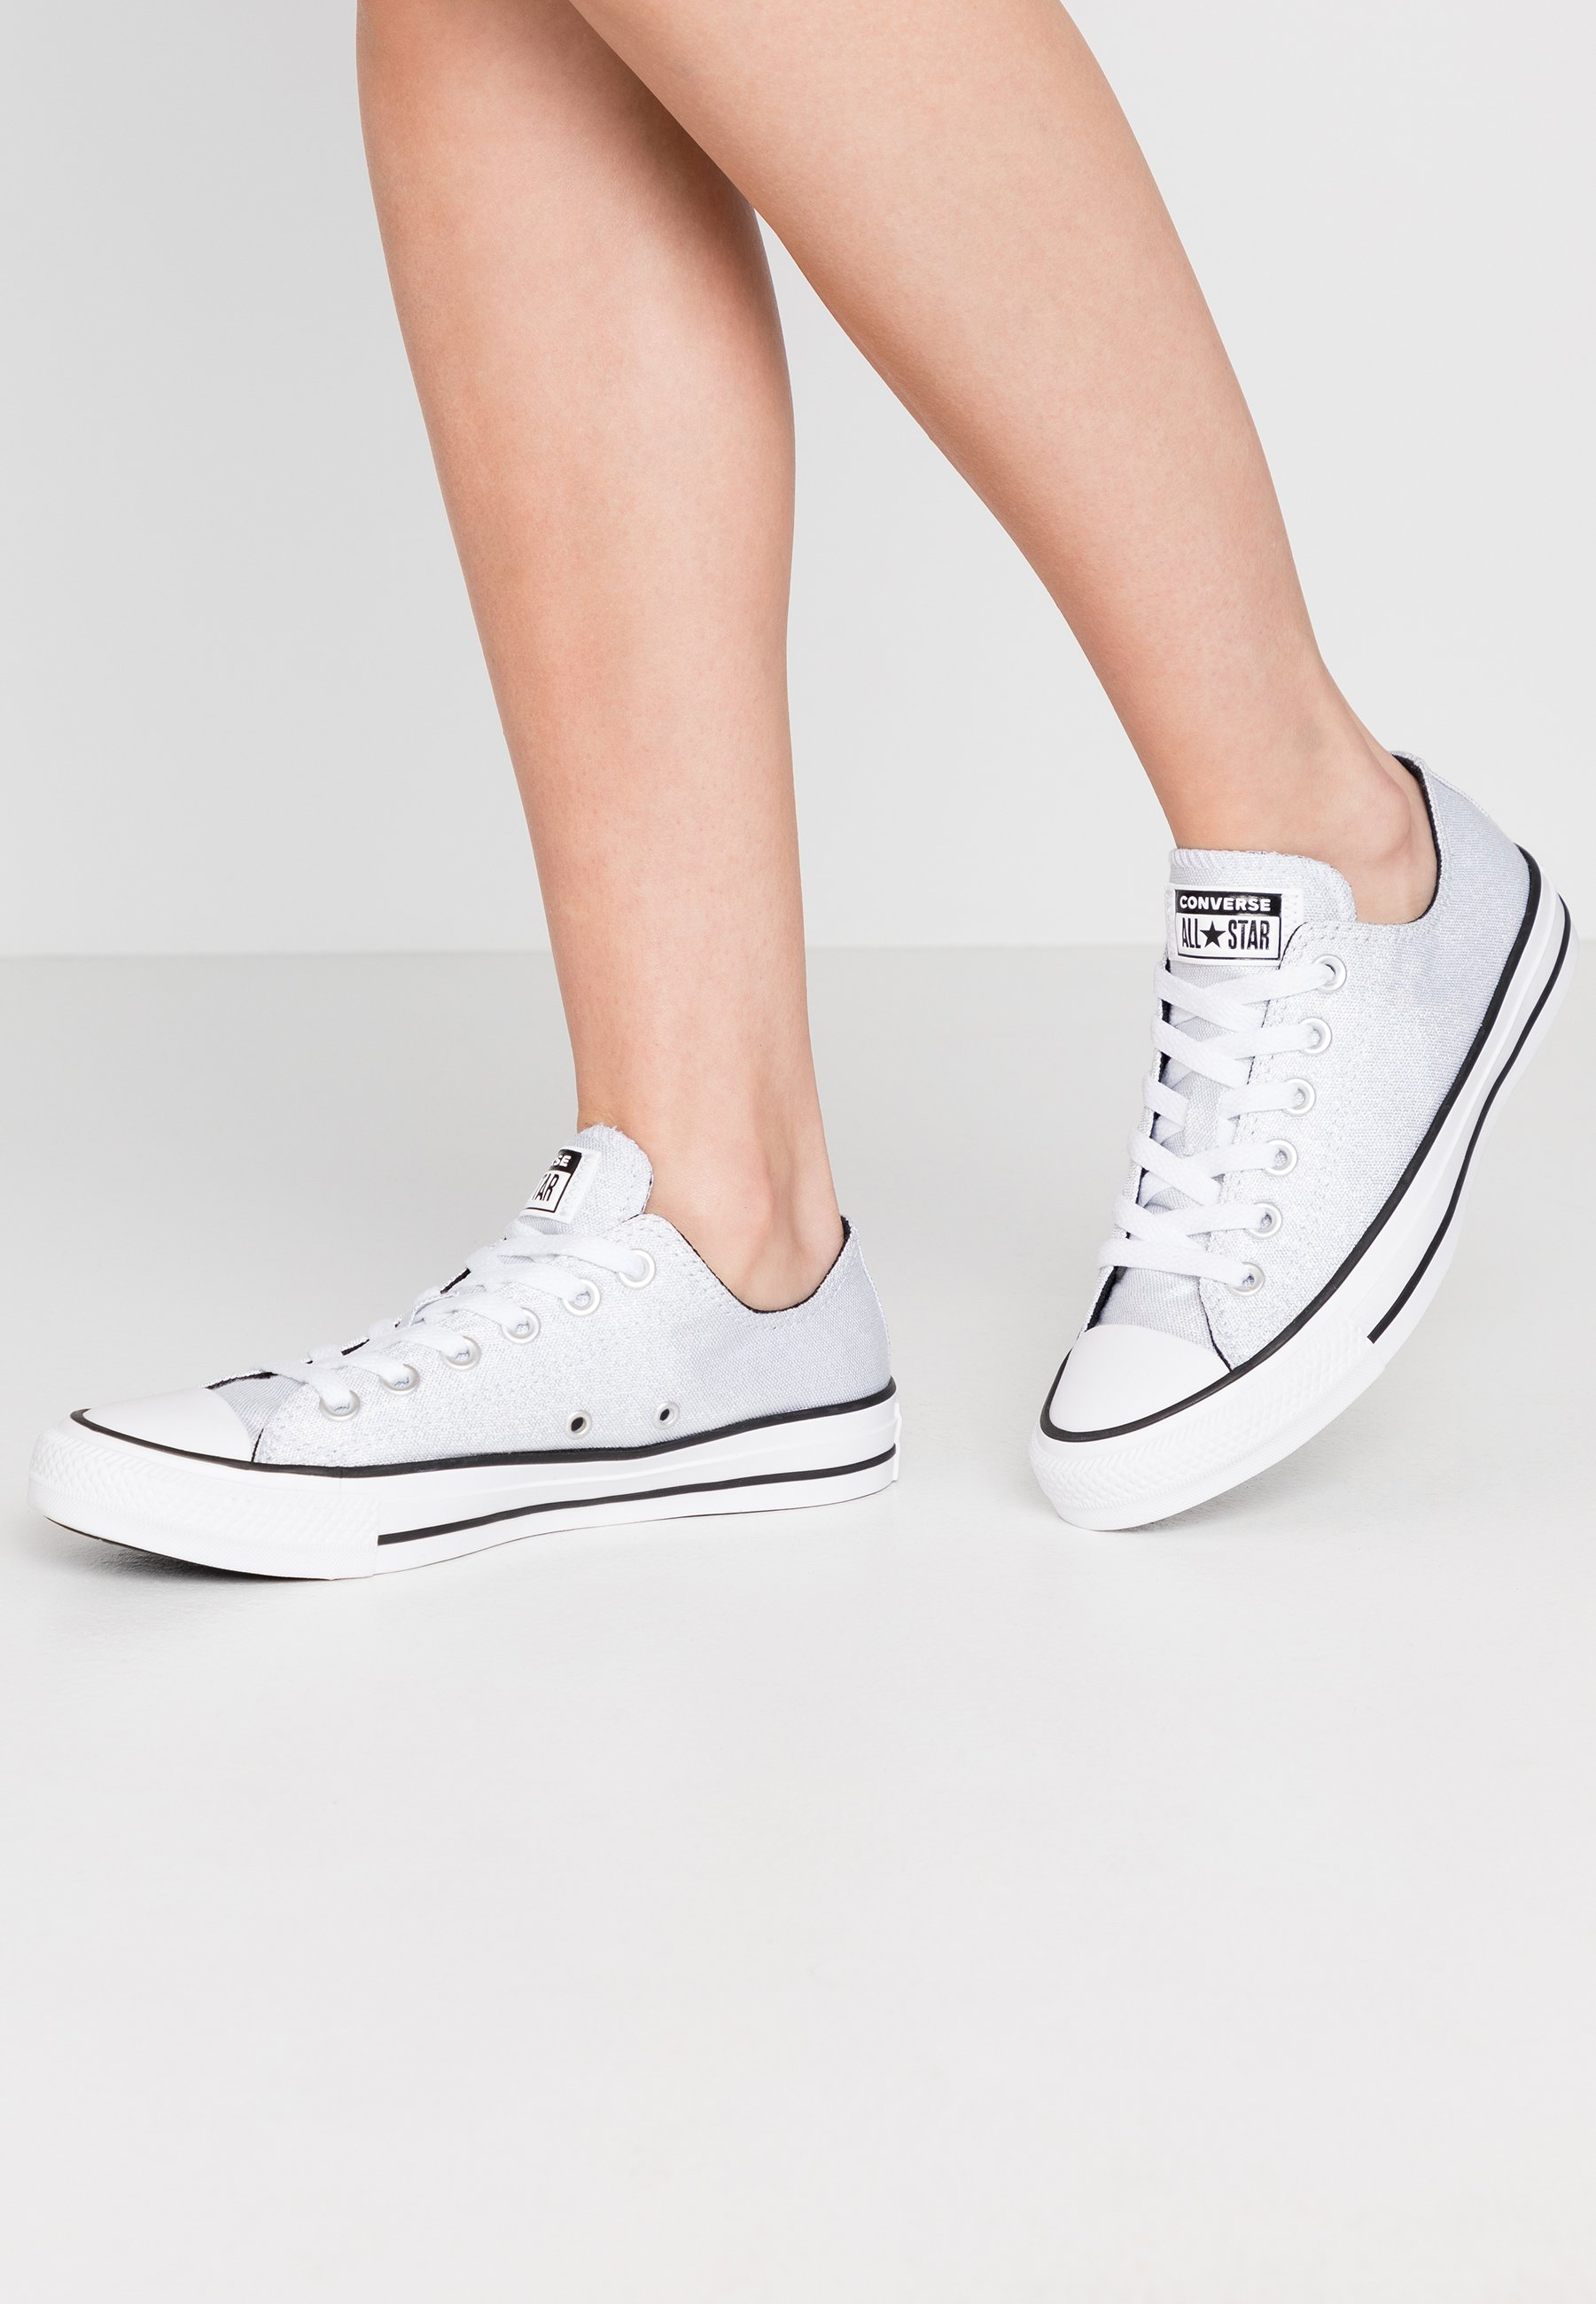 Details zu Converse All Star Chuck Taylor Sneakers Silver Glitter Sparkle Womens 13 Shoes